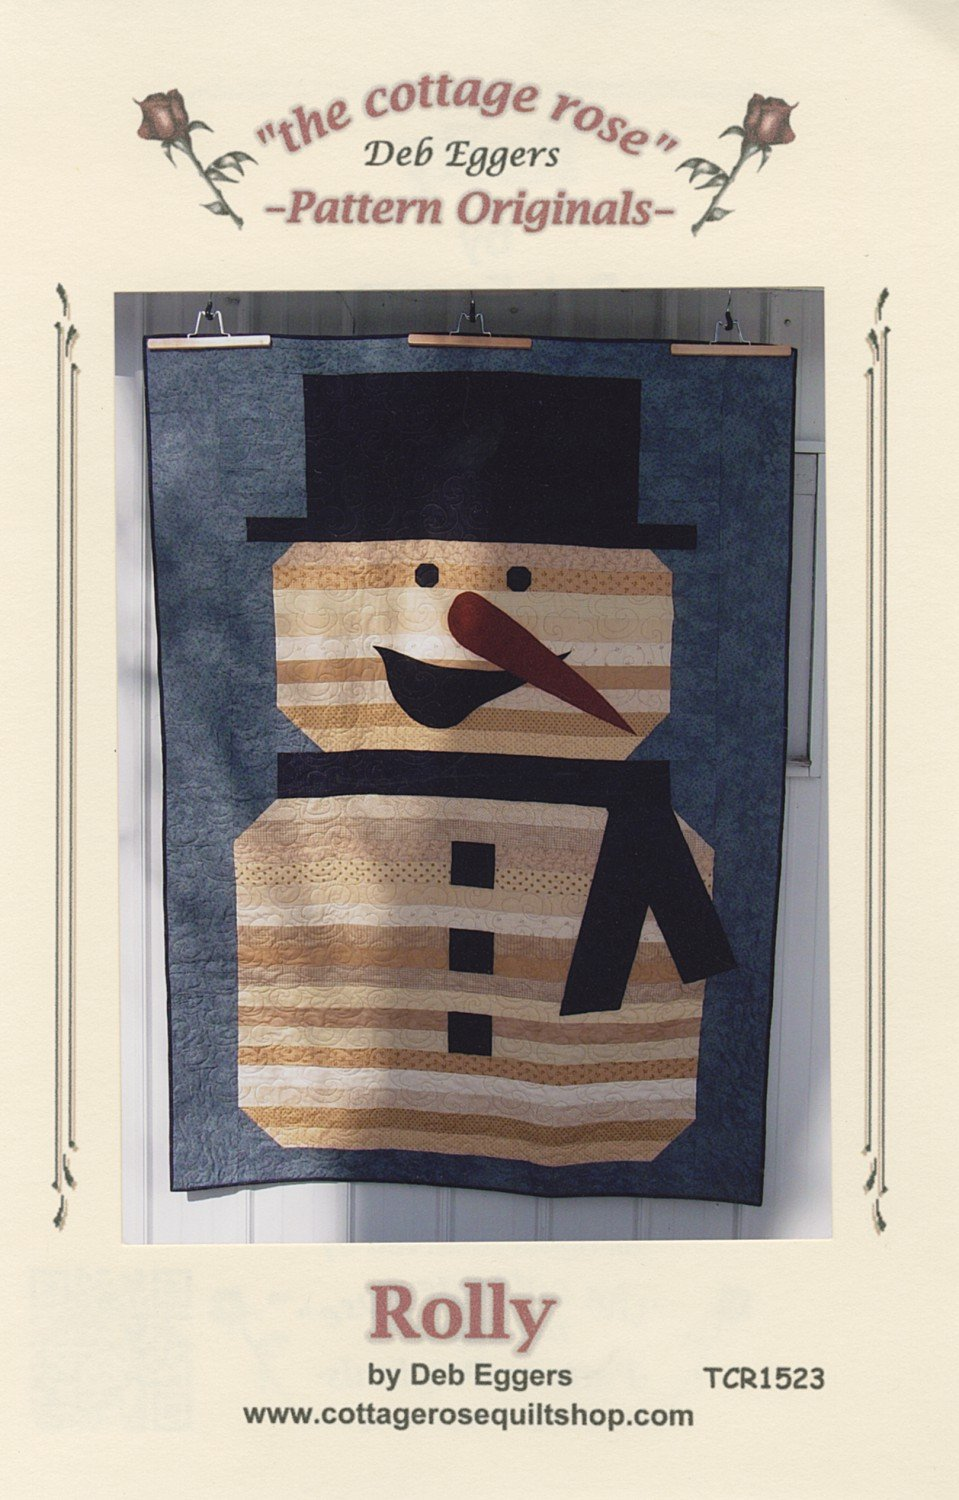 Rolly by Deb Eggers from Cottage Rose Quilts